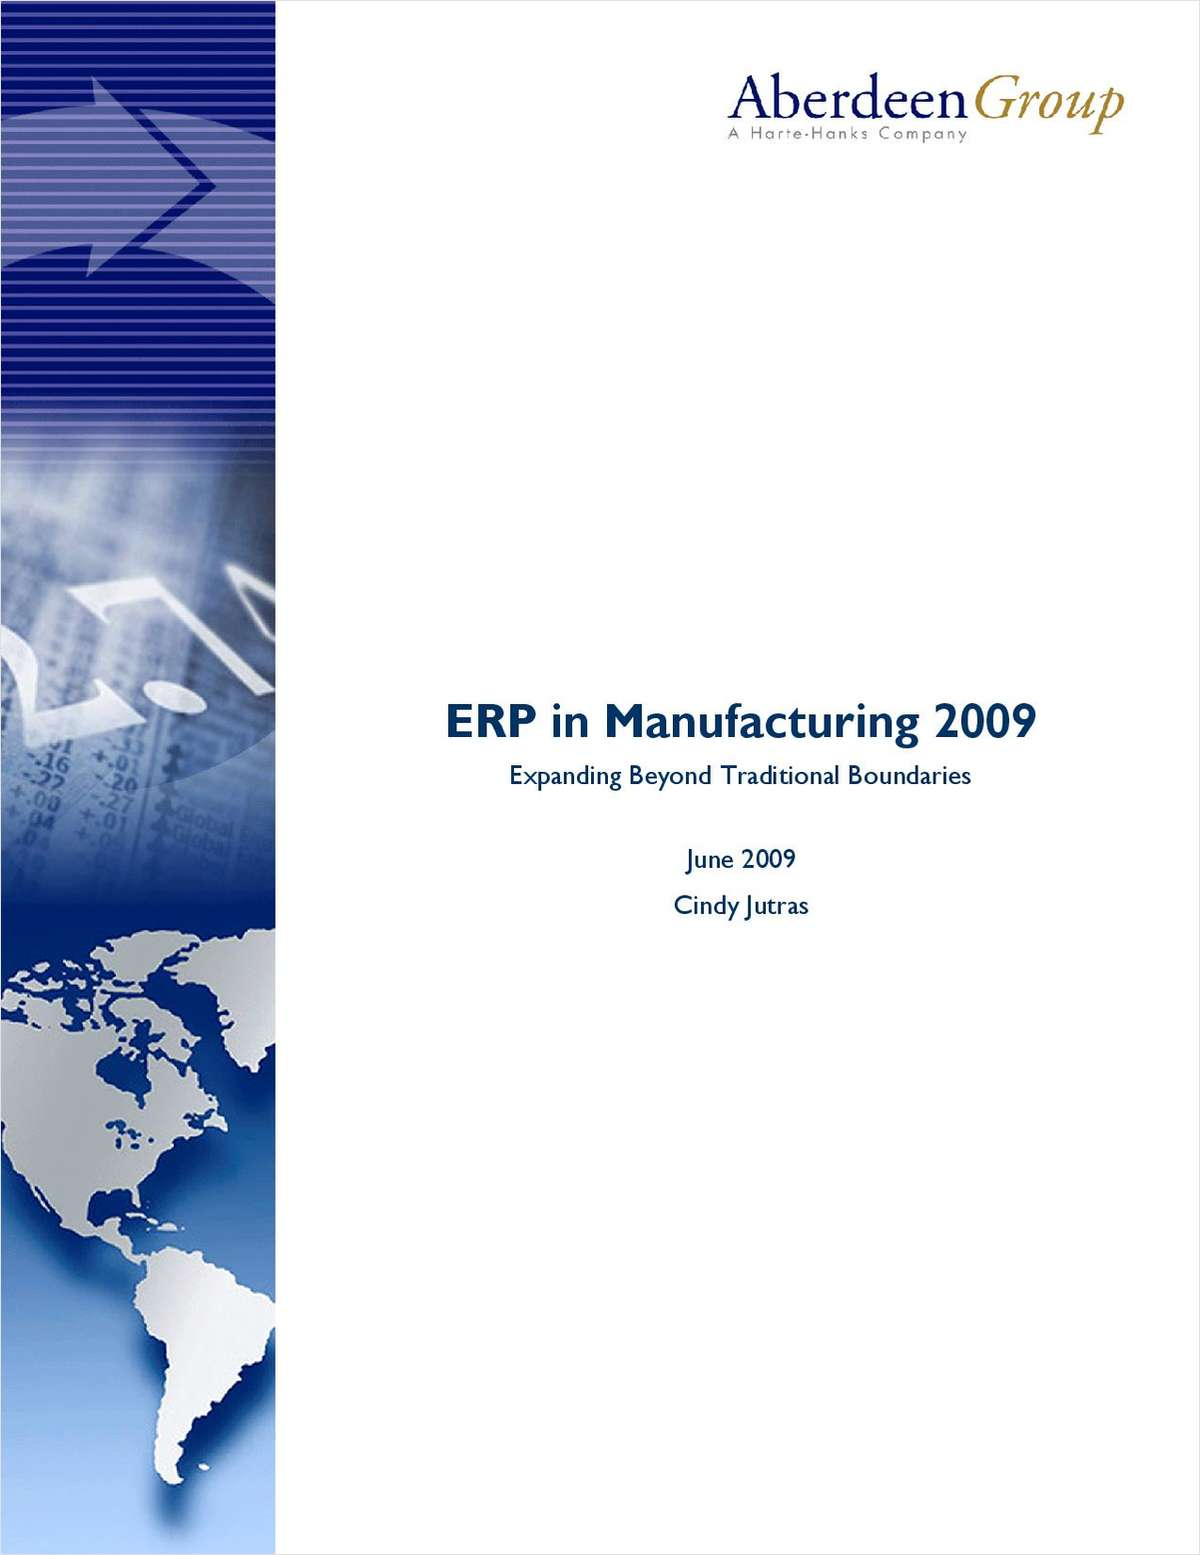 ERP in Manufacturing: Expanding Beyond Traditional Boundaries - Aberdeen Group